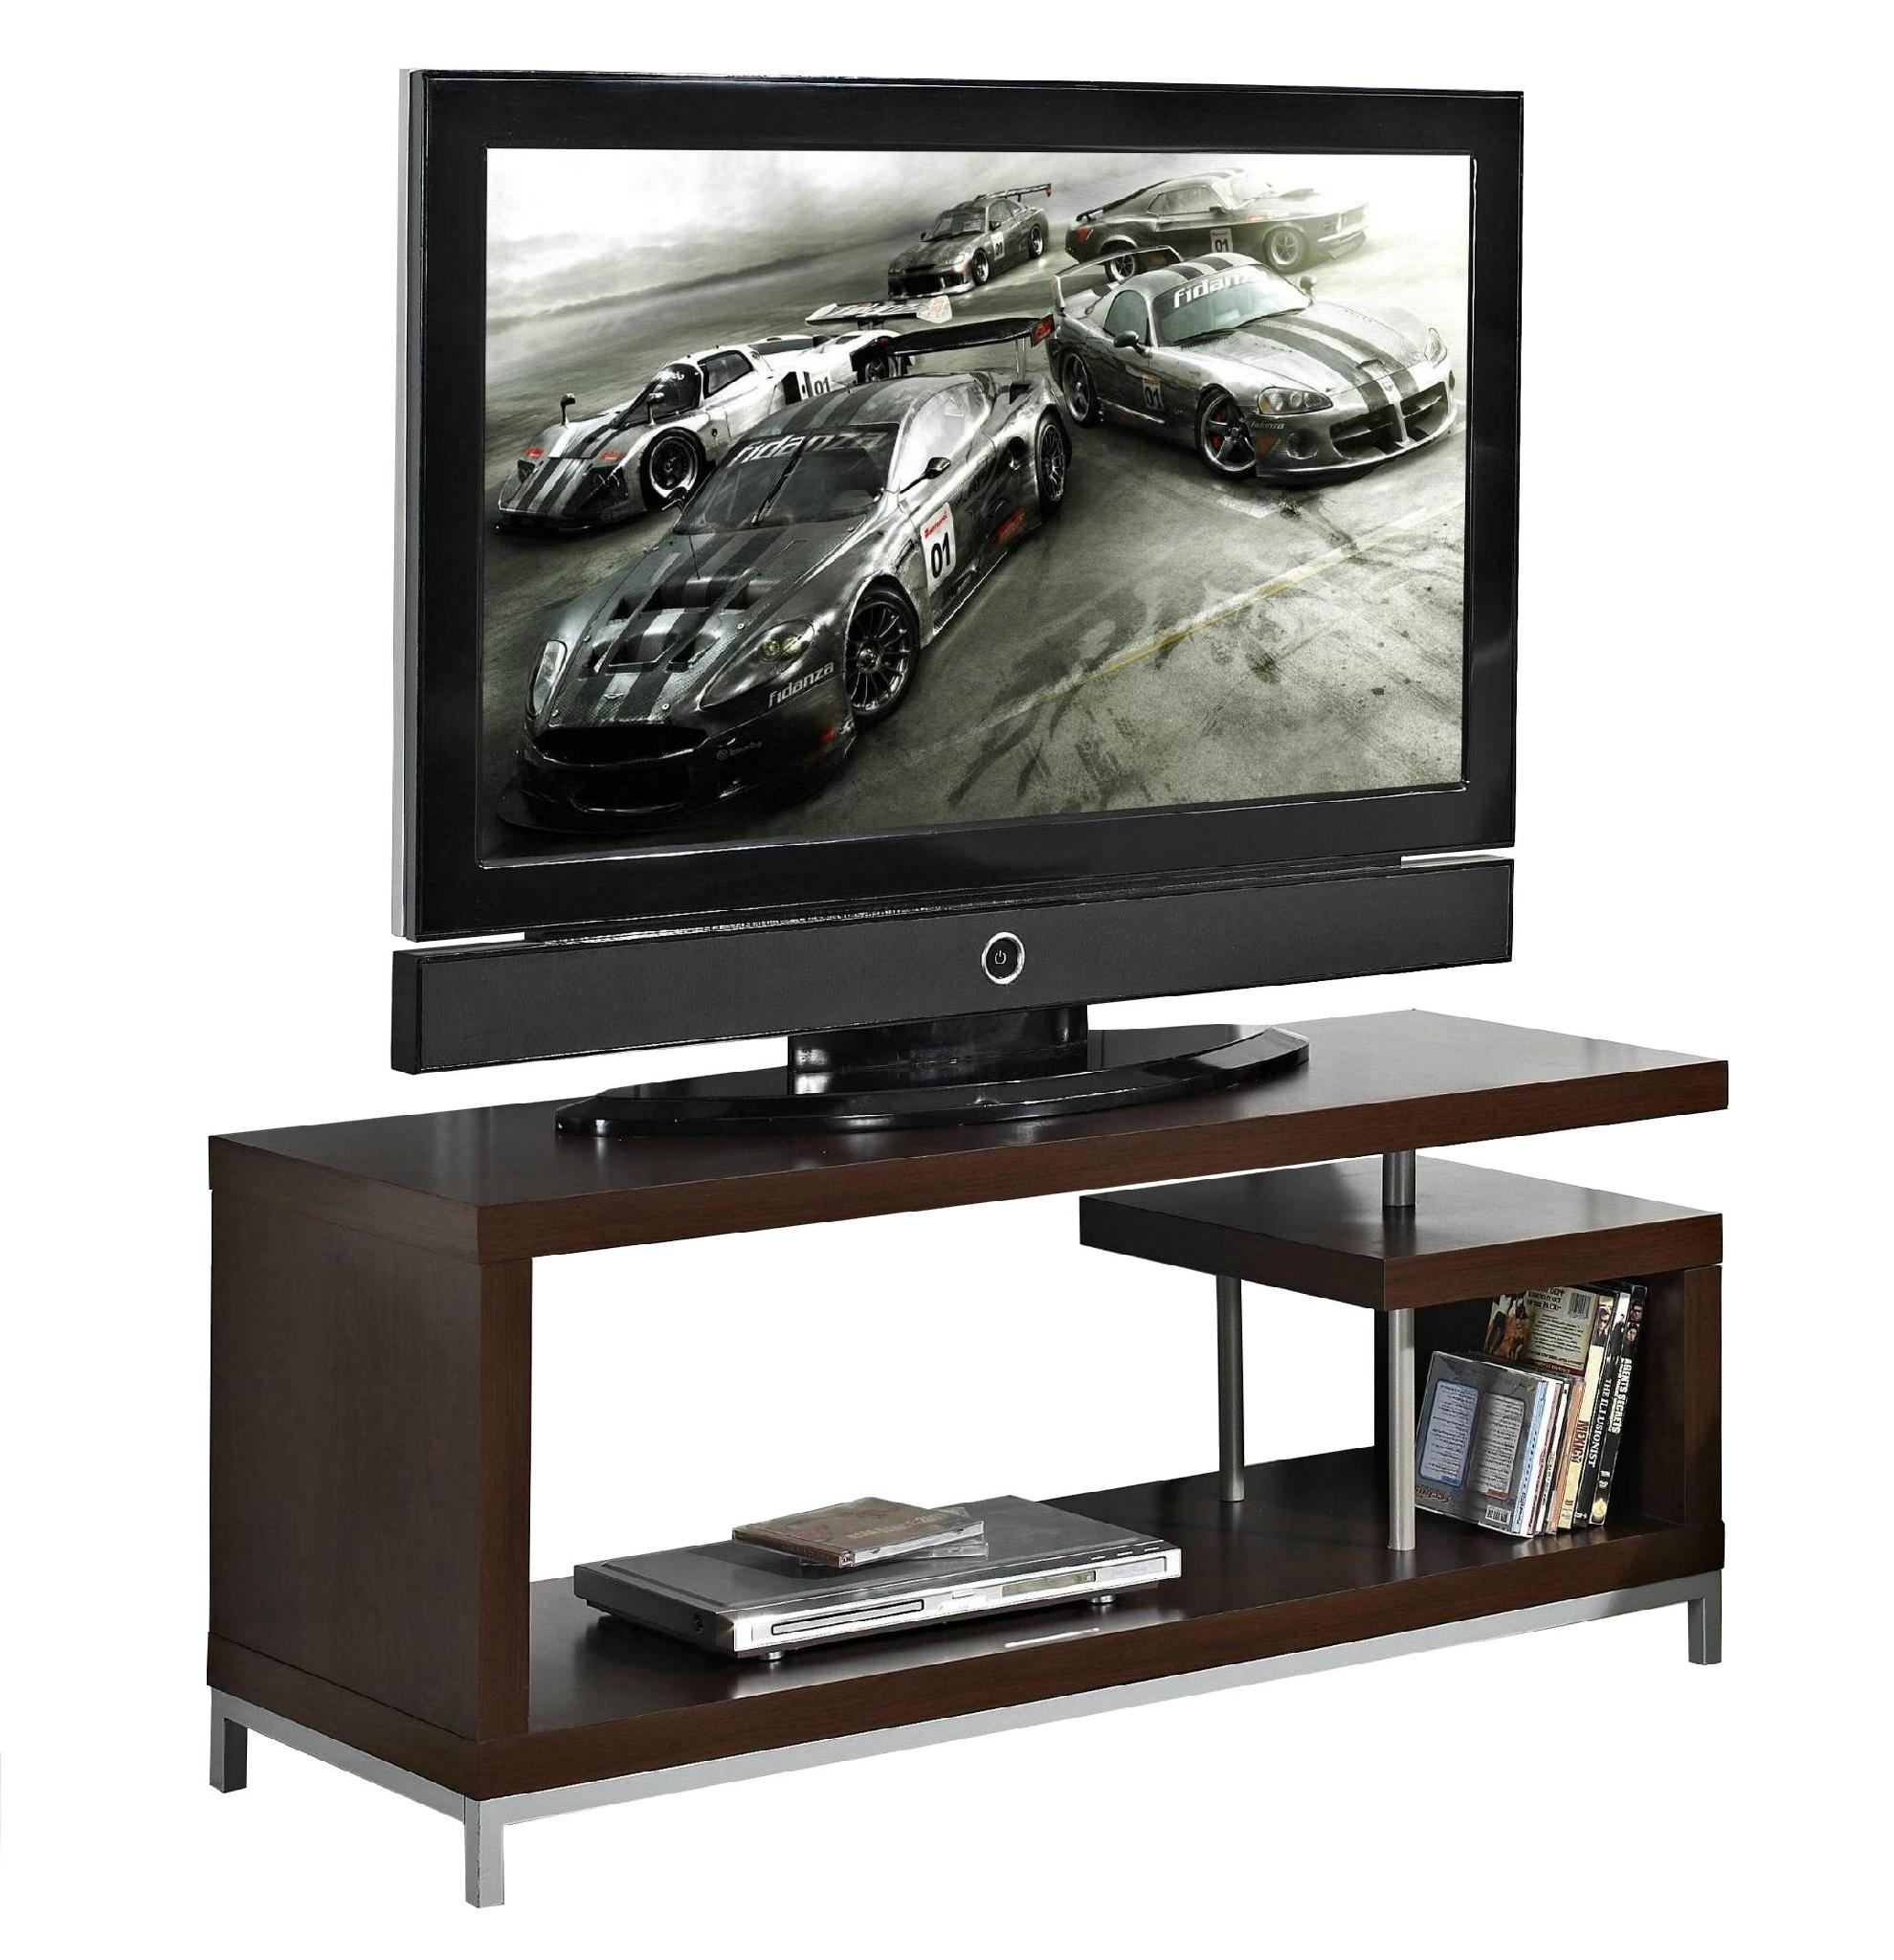 45 inch Wooden Grey Reclaimed LCD TV Table Stand 7